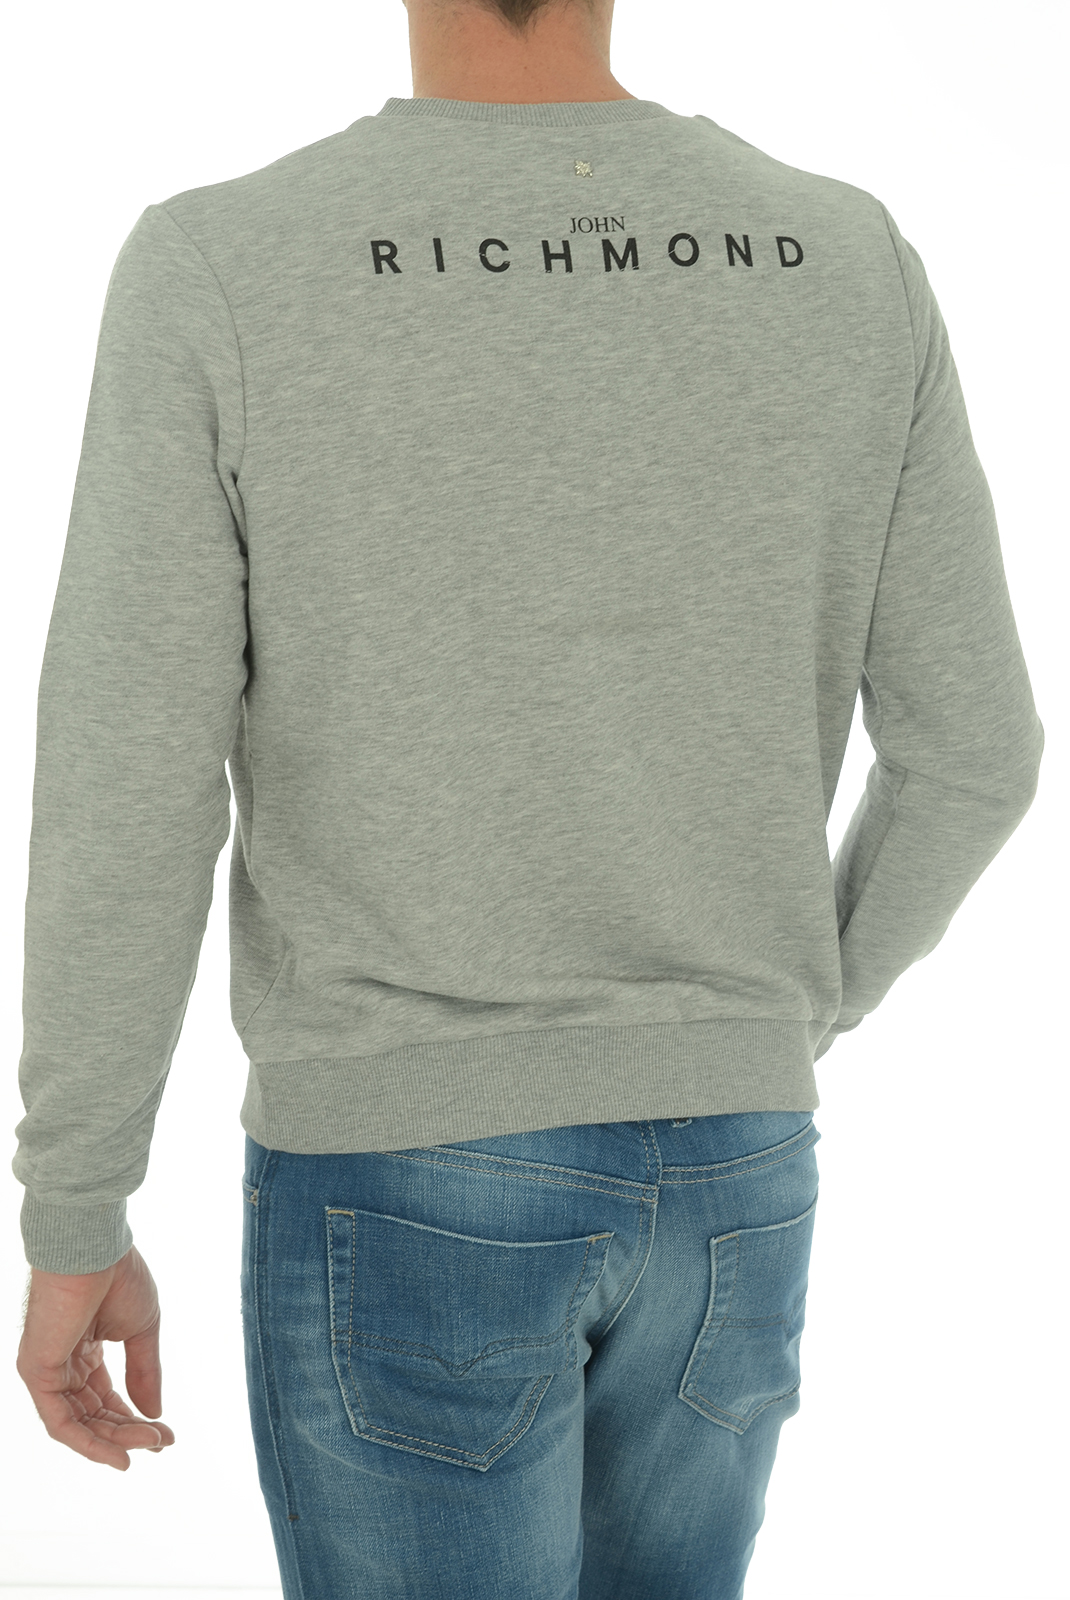 Sweatshirts  John richmond ALTAMIRA W0066 GRIGIO MEL